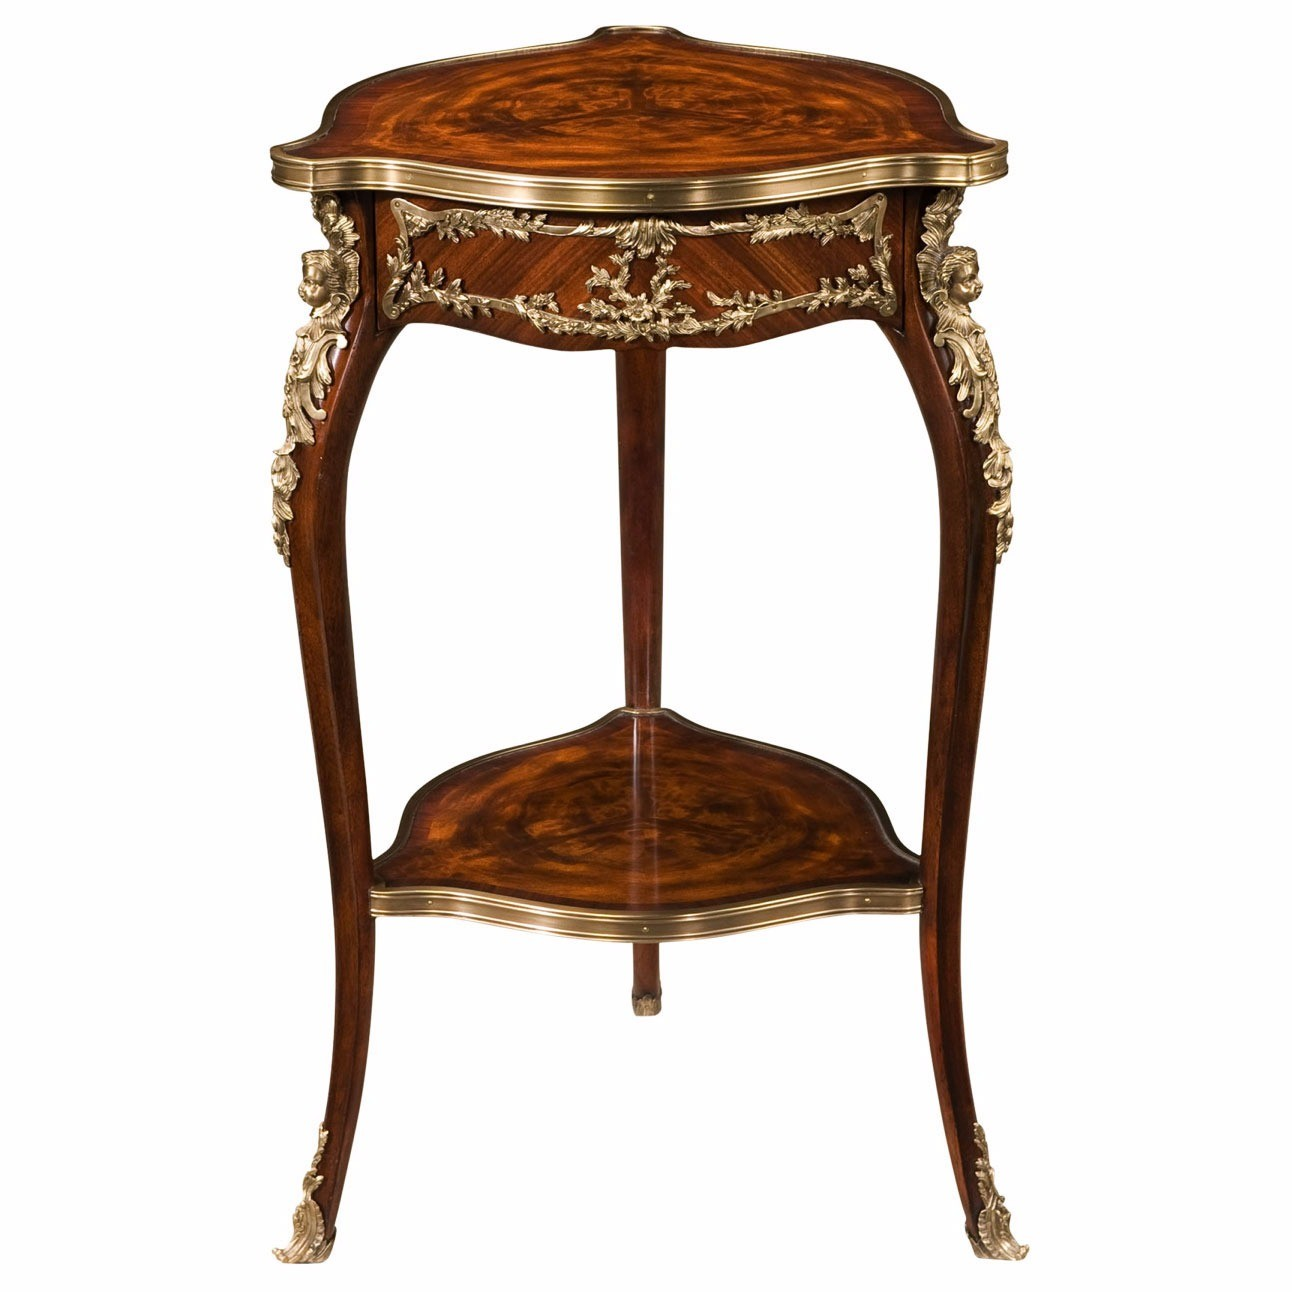 Louis xv style mahogany and ormolu occasional table lamp side tables from brights of nettlebed - Table louis xv ...